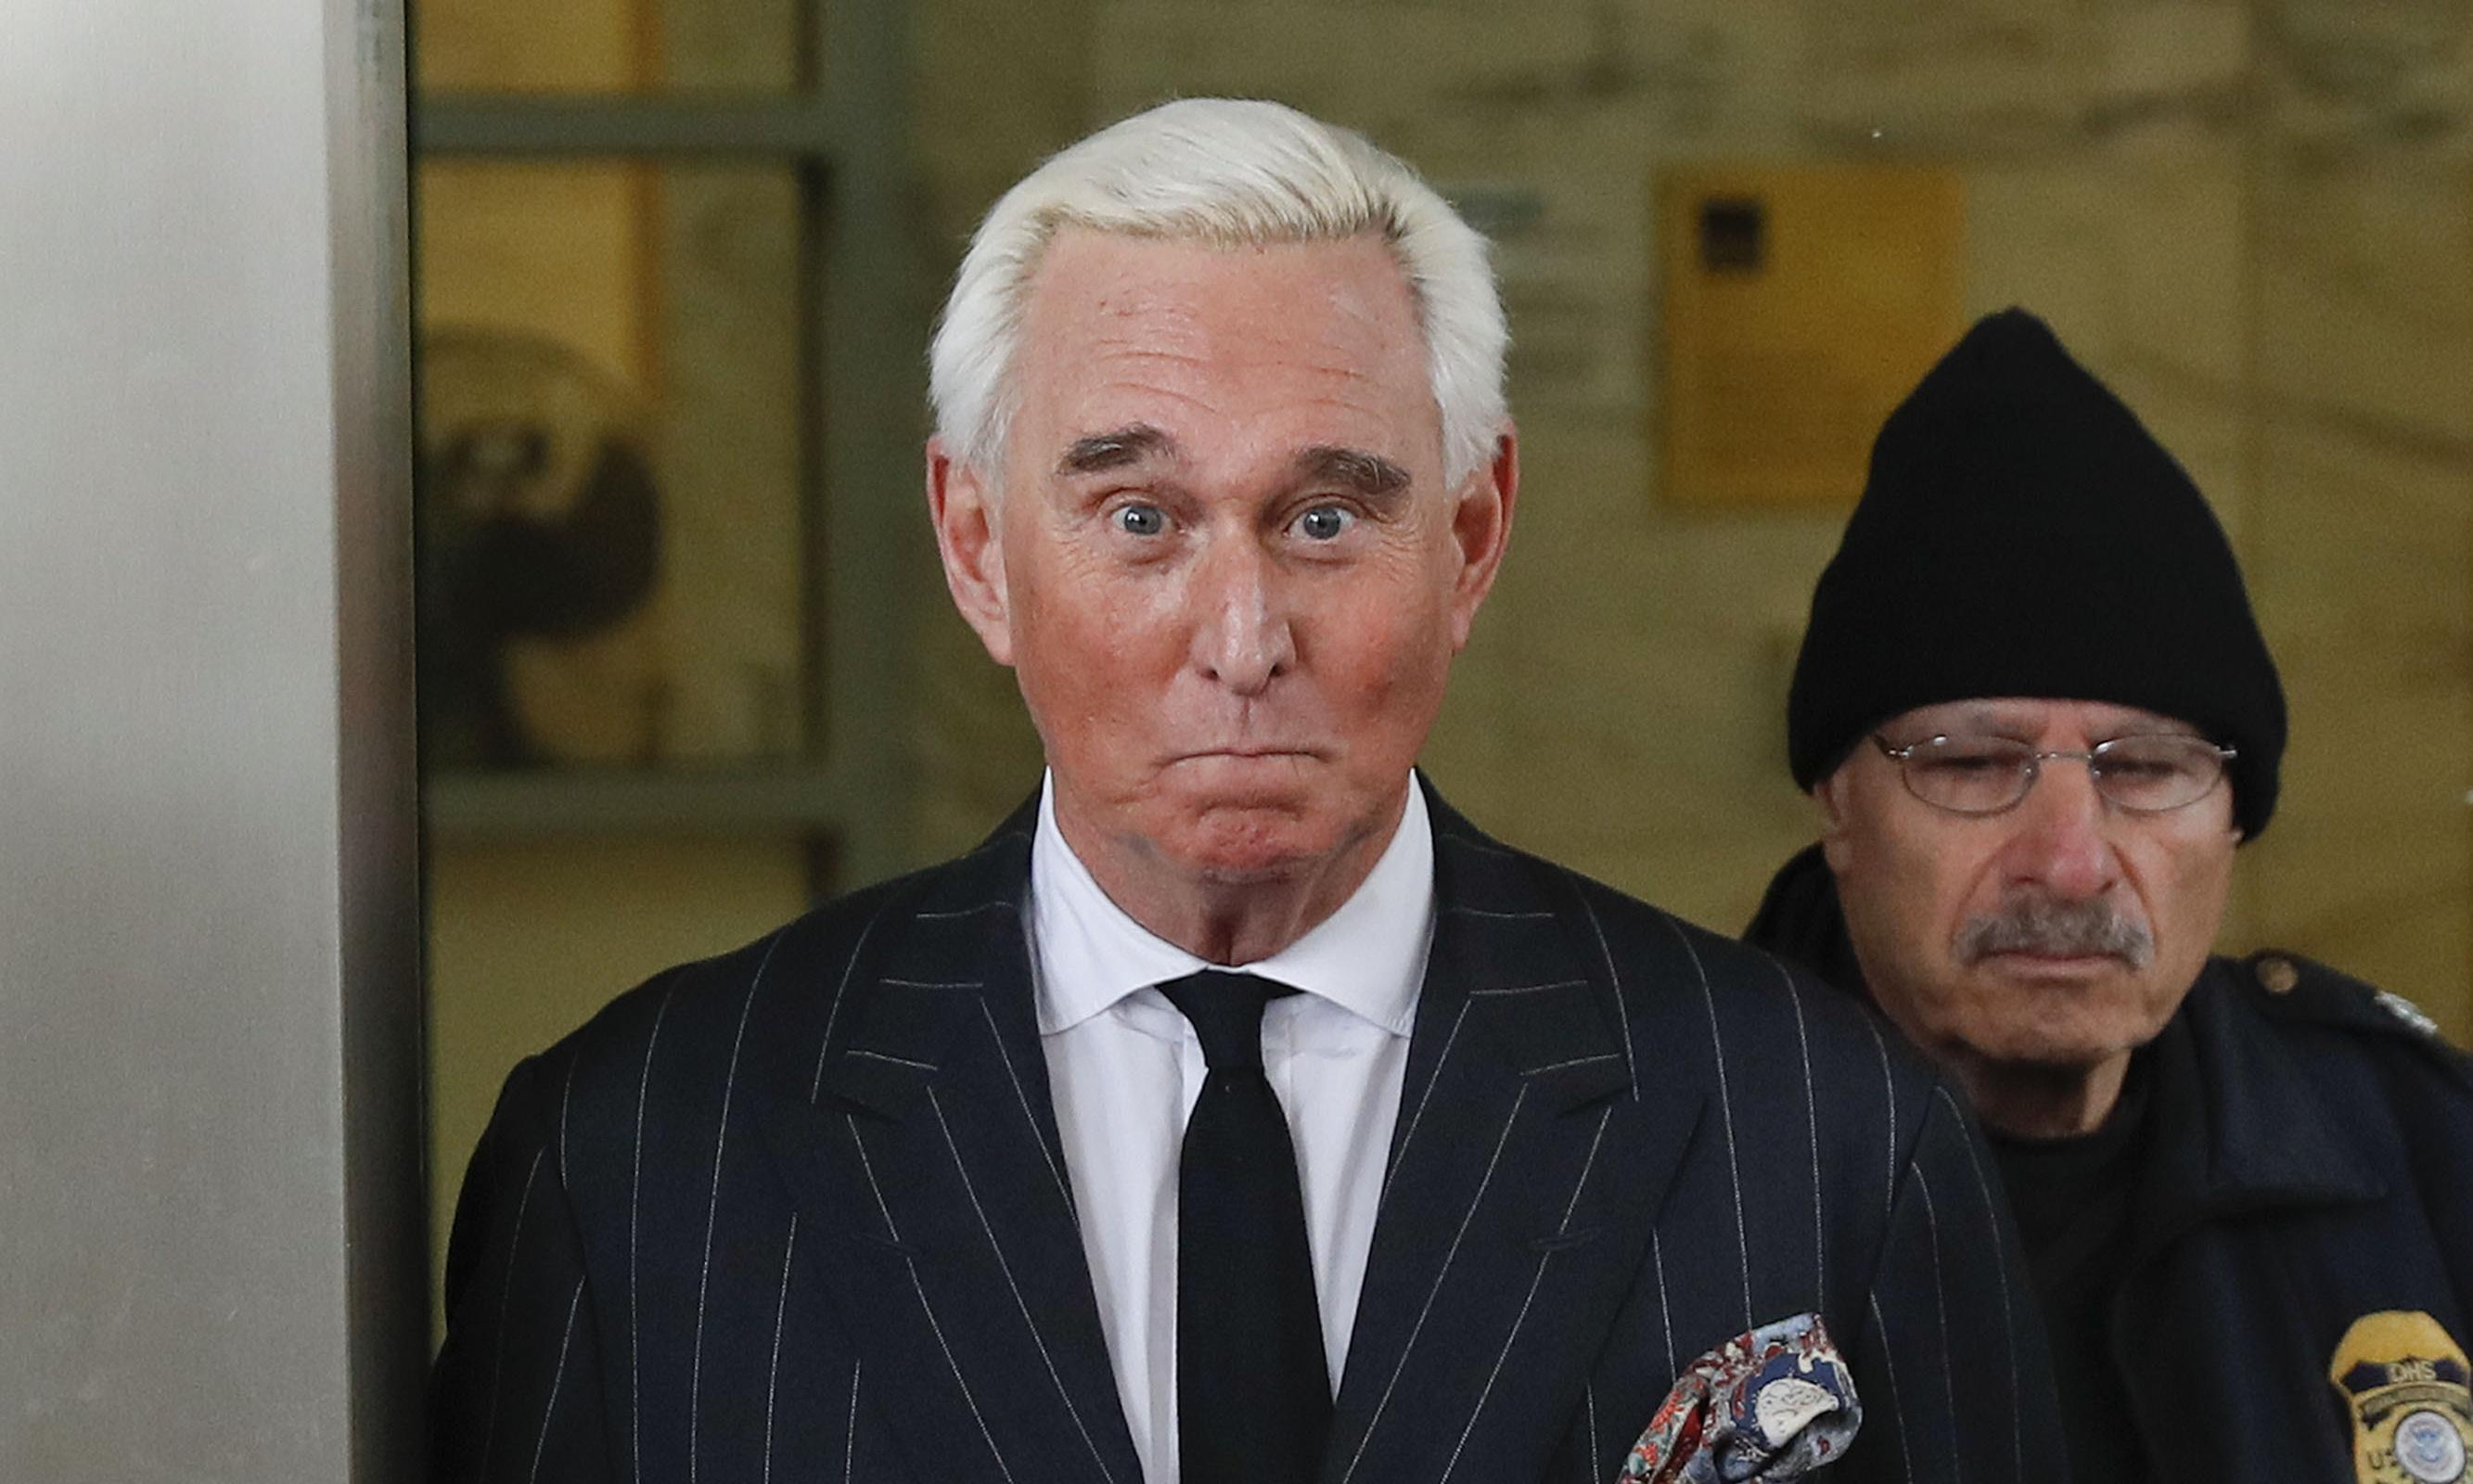 Roger Stone: judge issues gag order on Trump confidant in criminal case